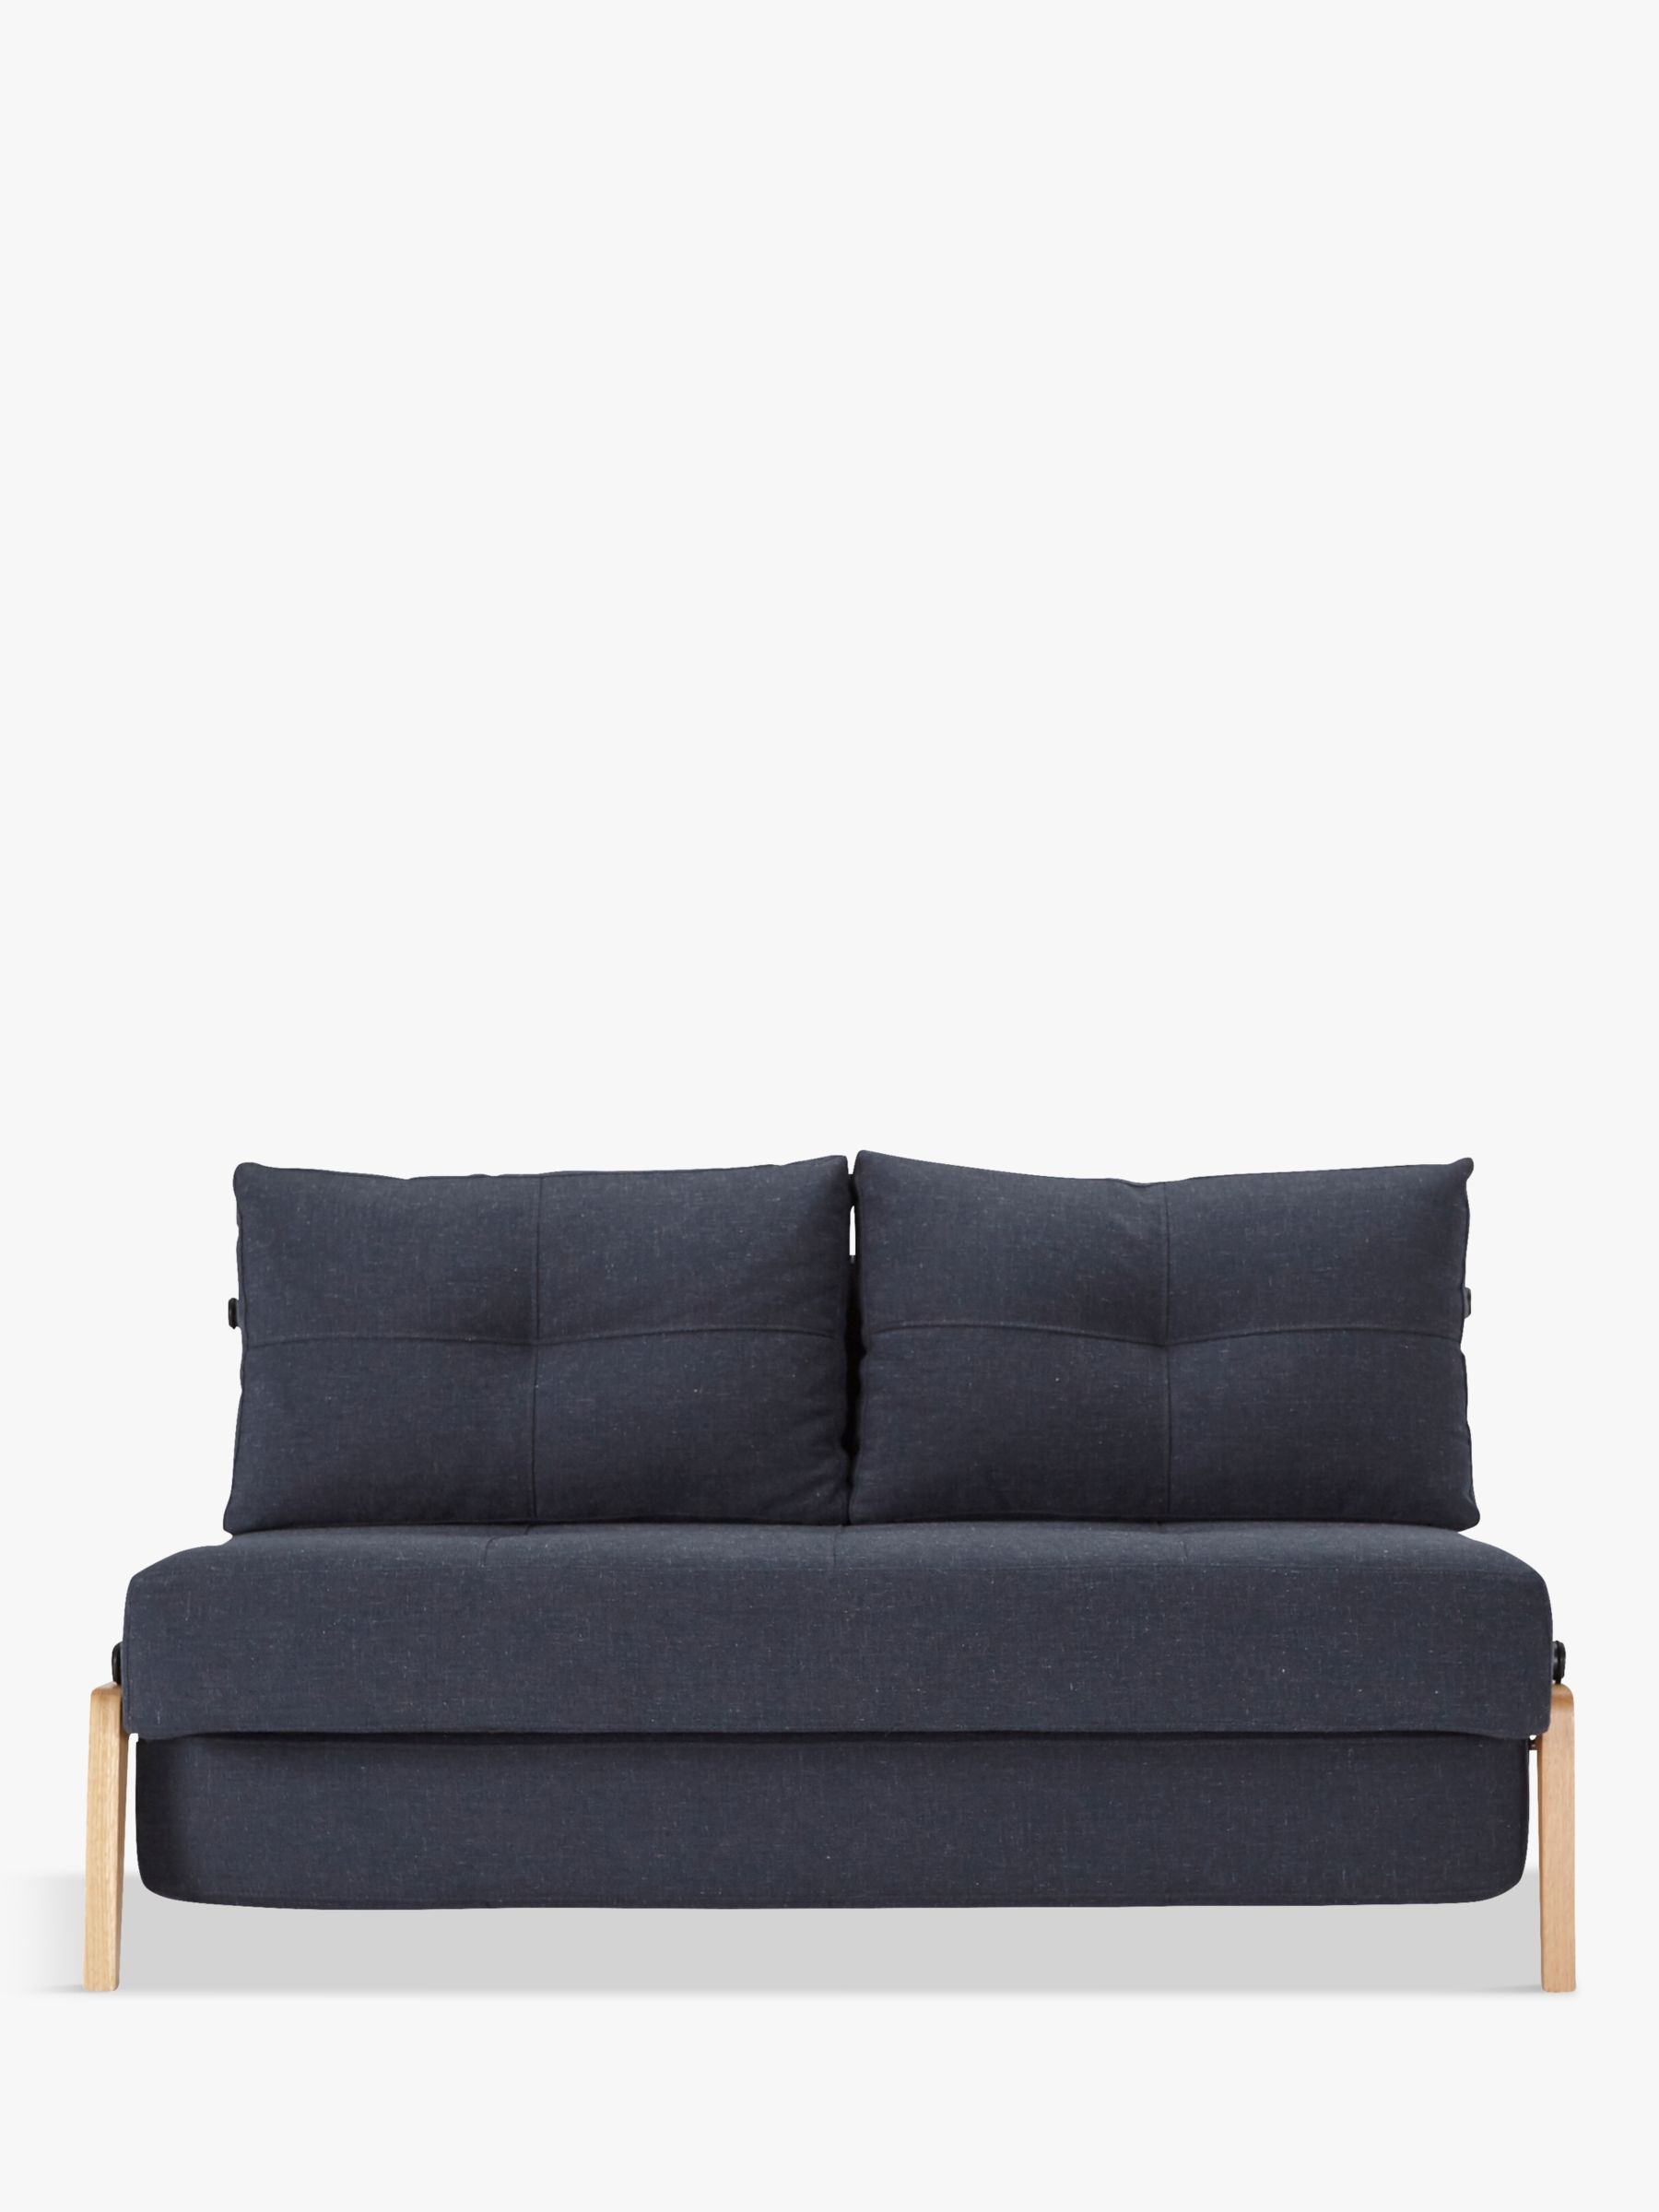 Sofa Beds Sofas Sofa Beds John Lewis